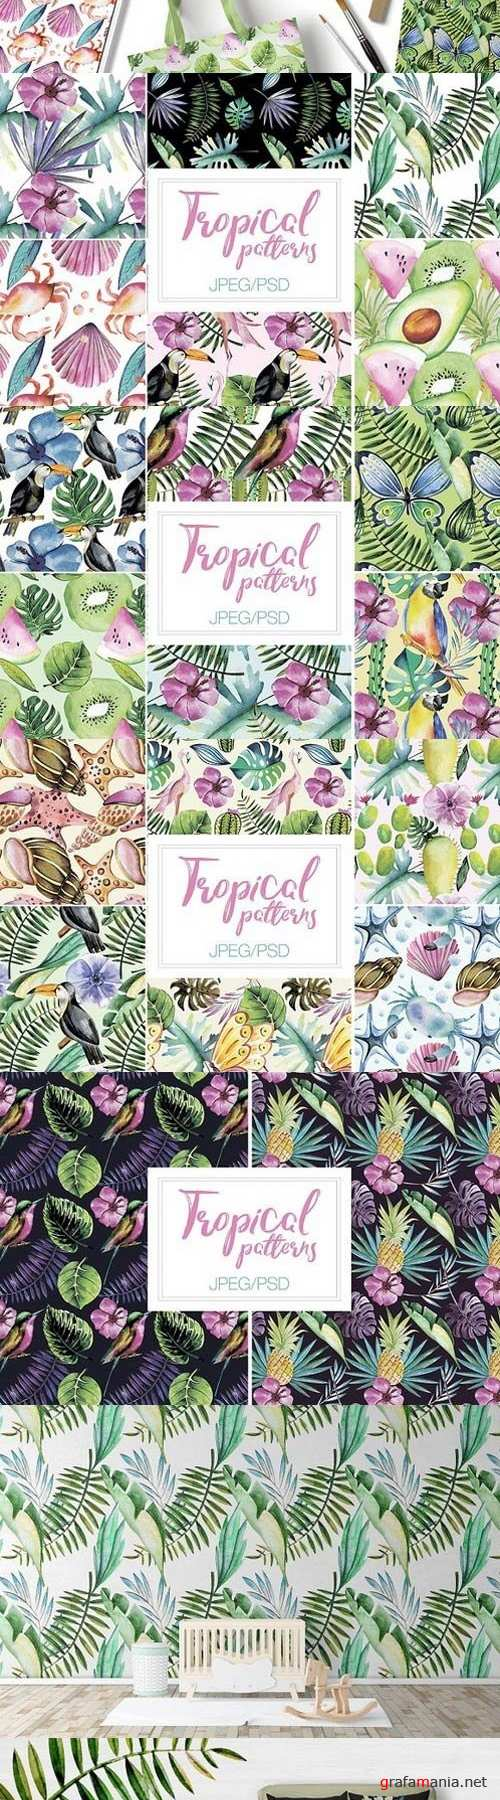 Watercolor Tropical Patterns 1808366